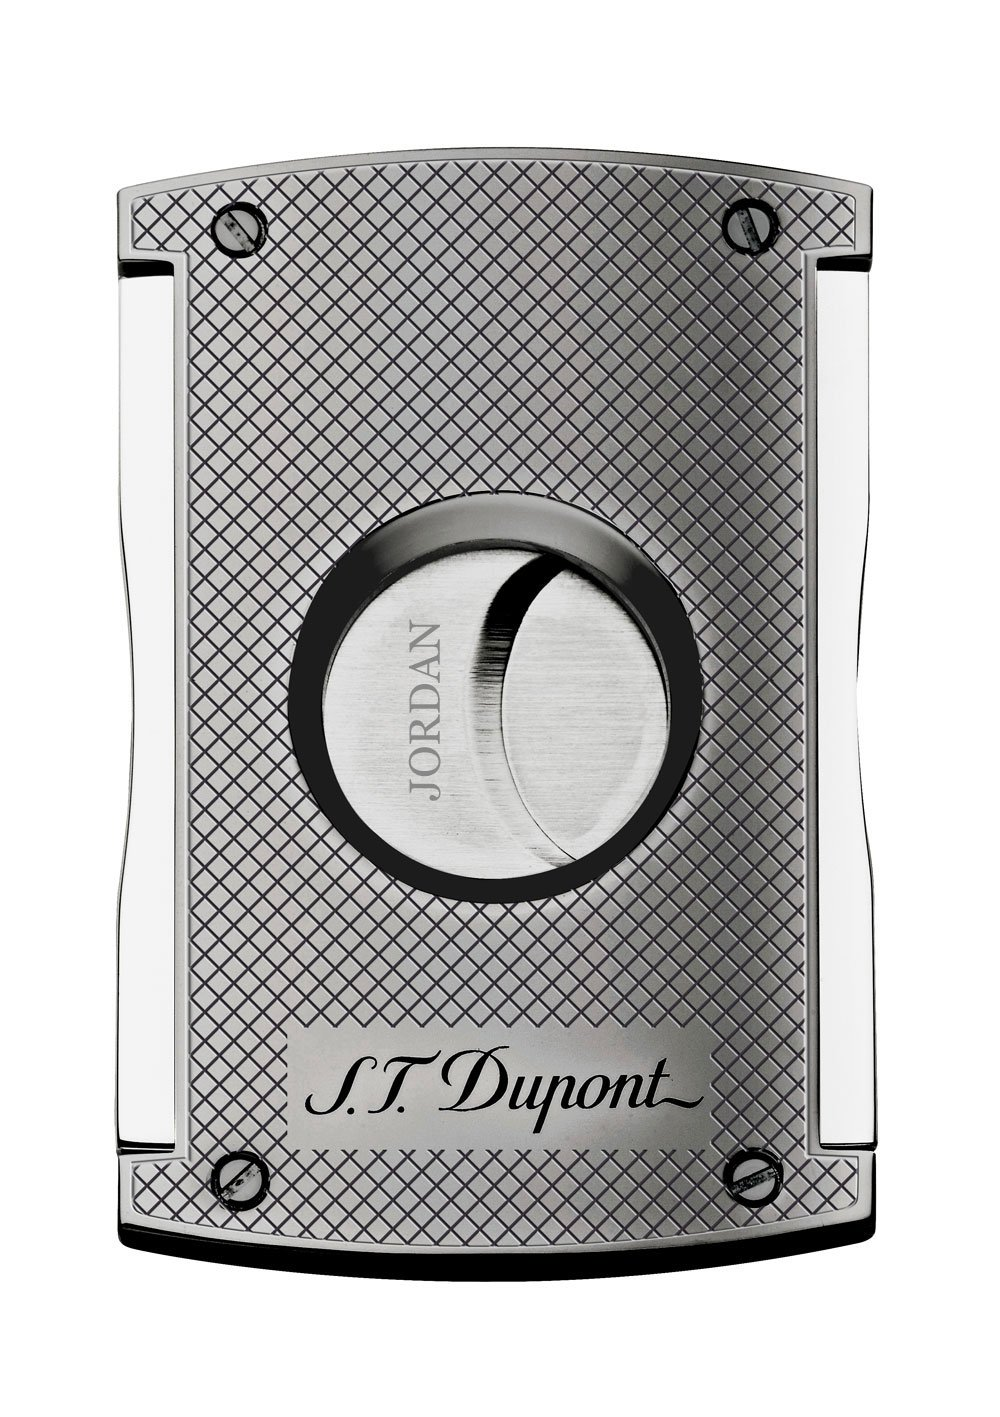 Personalized S.T. Dupont Chrome Grid MaxiJet Cigar Cutter with Free Laser Engraving